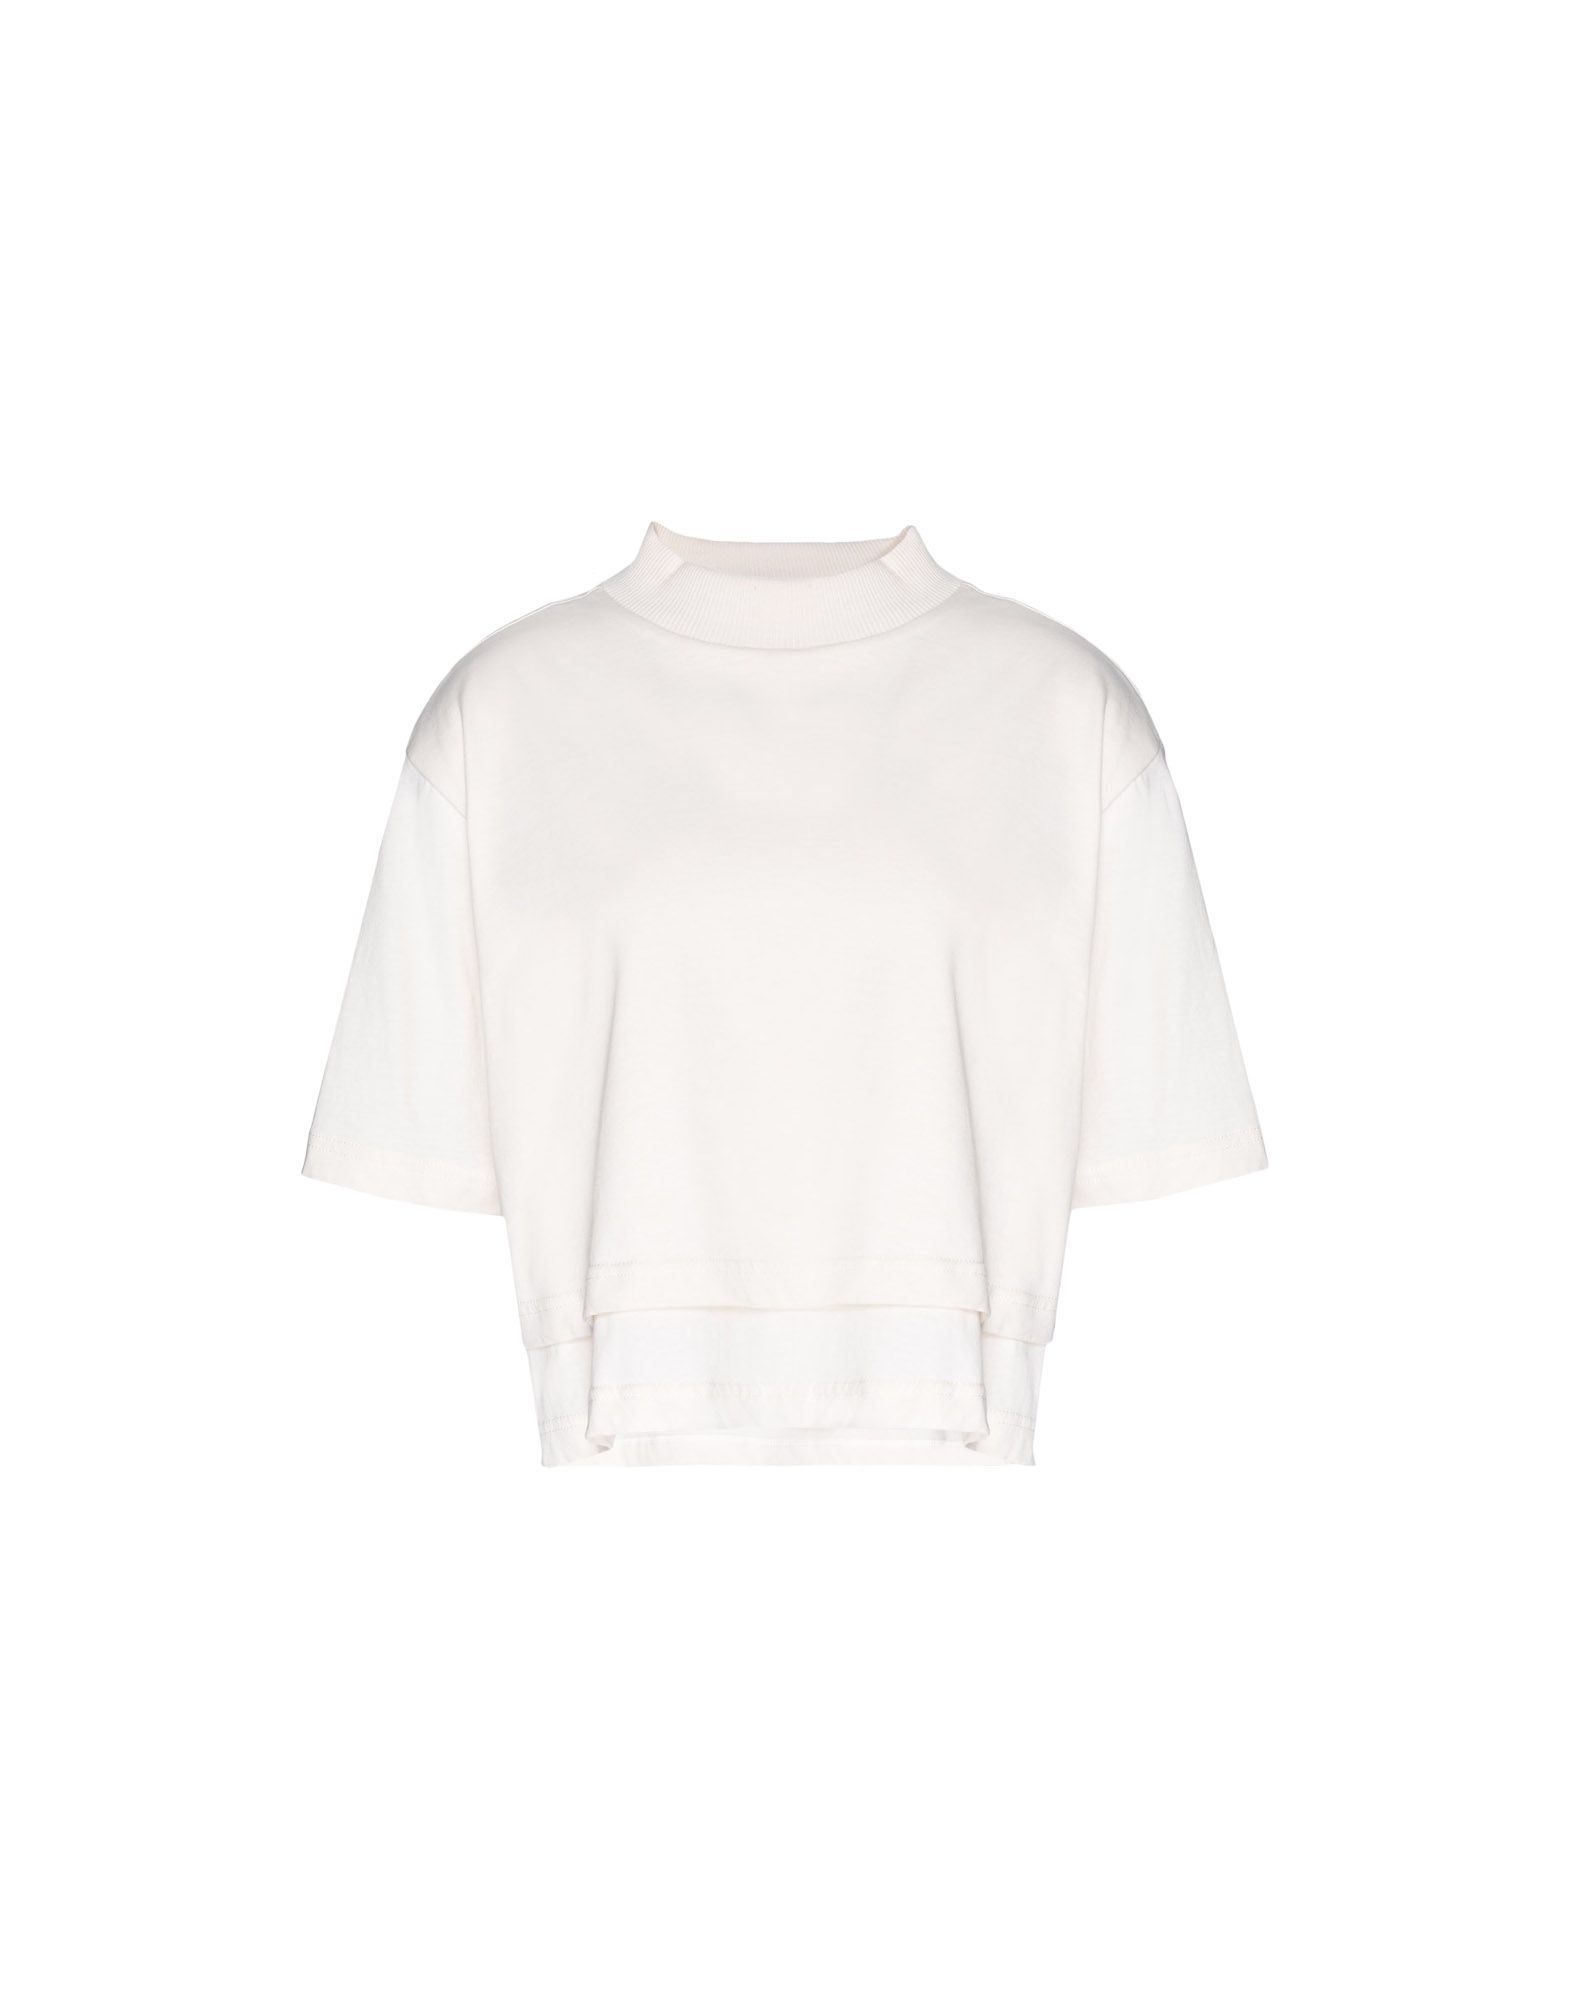 Y-3 Y-3 Stacked Logo Cropped Tee Short sleeve t-shirt Woman f